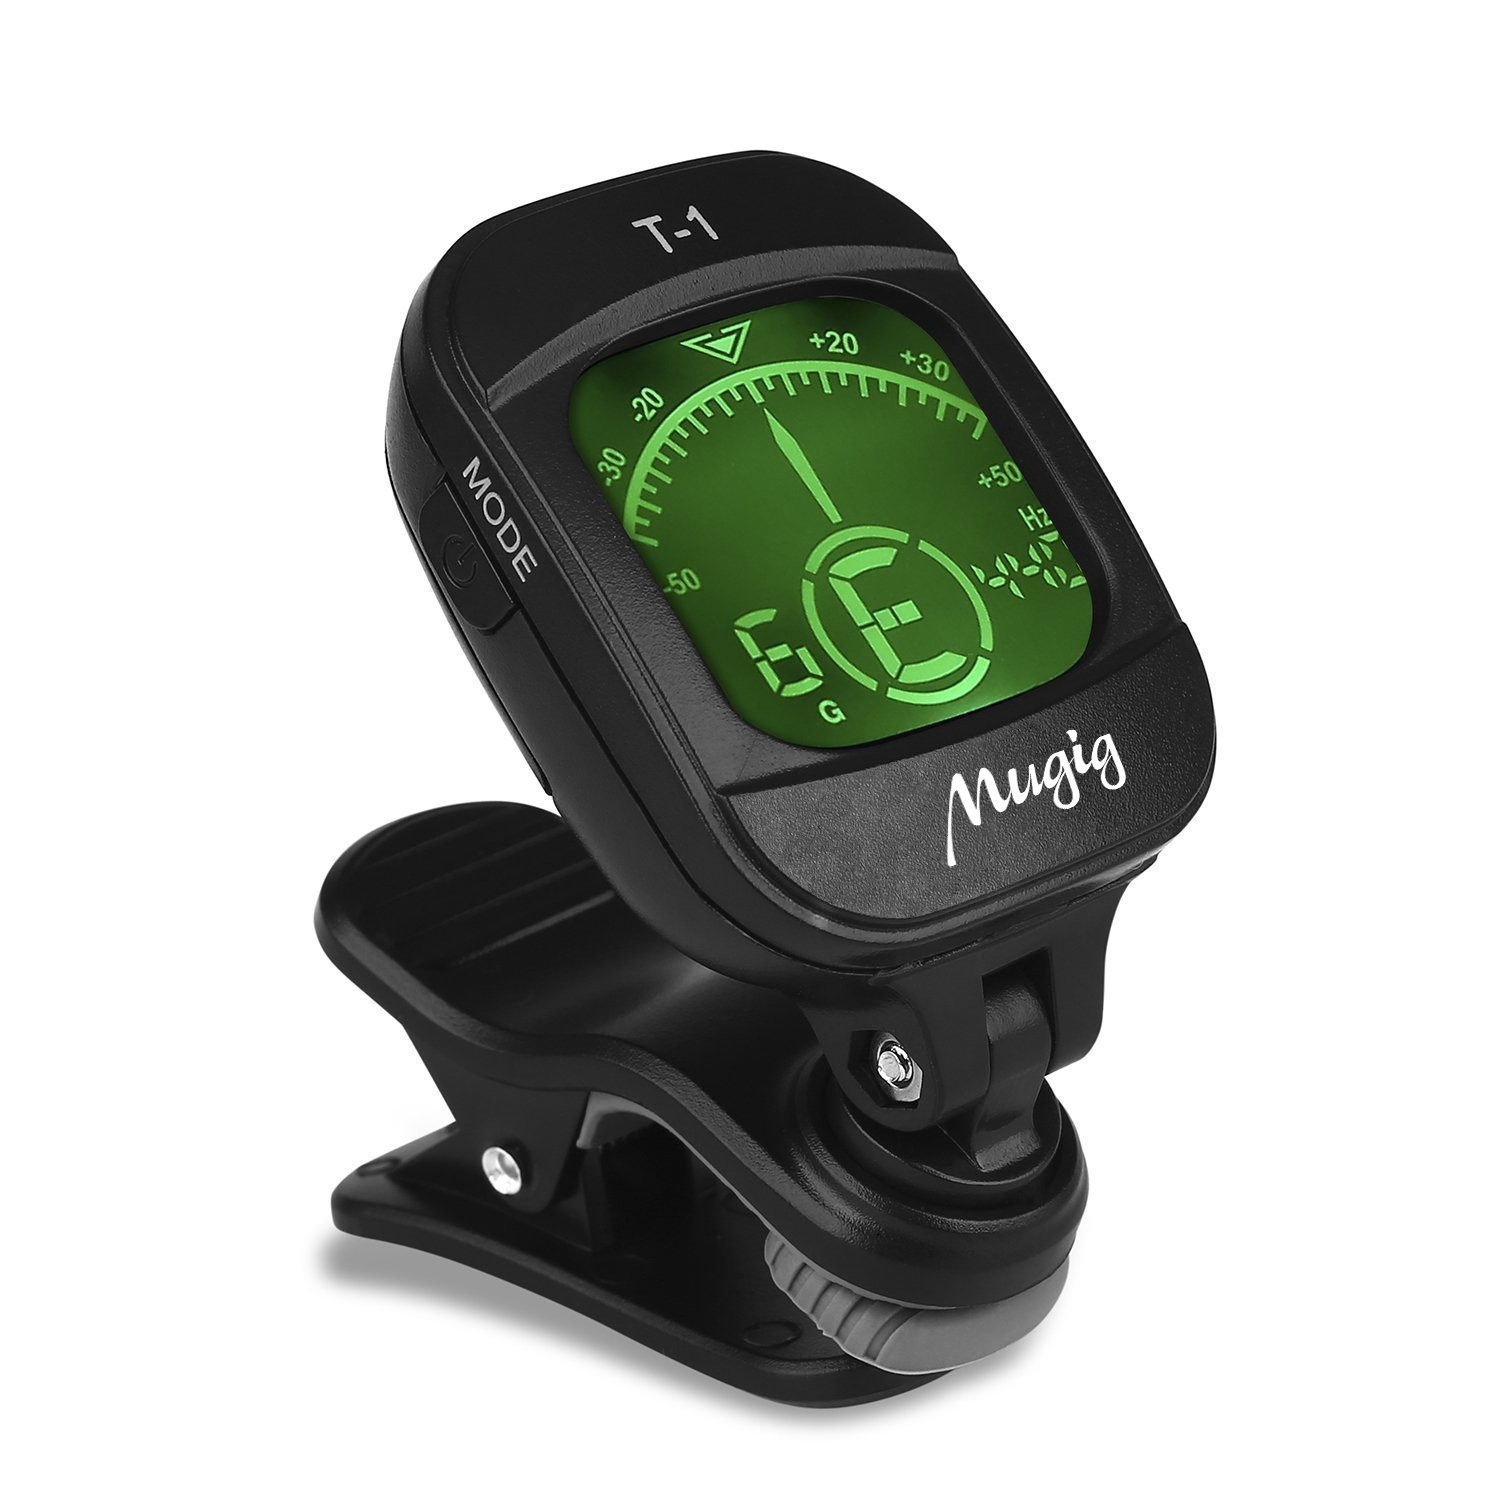 Mugig Guitar Tuner Clip-on with LCD Display, Calibrated Pitch & 360 Degree Rotating, Auto Off Chromatic Tuner for Bass, Violin, Ukulele (Battery Included) t-2